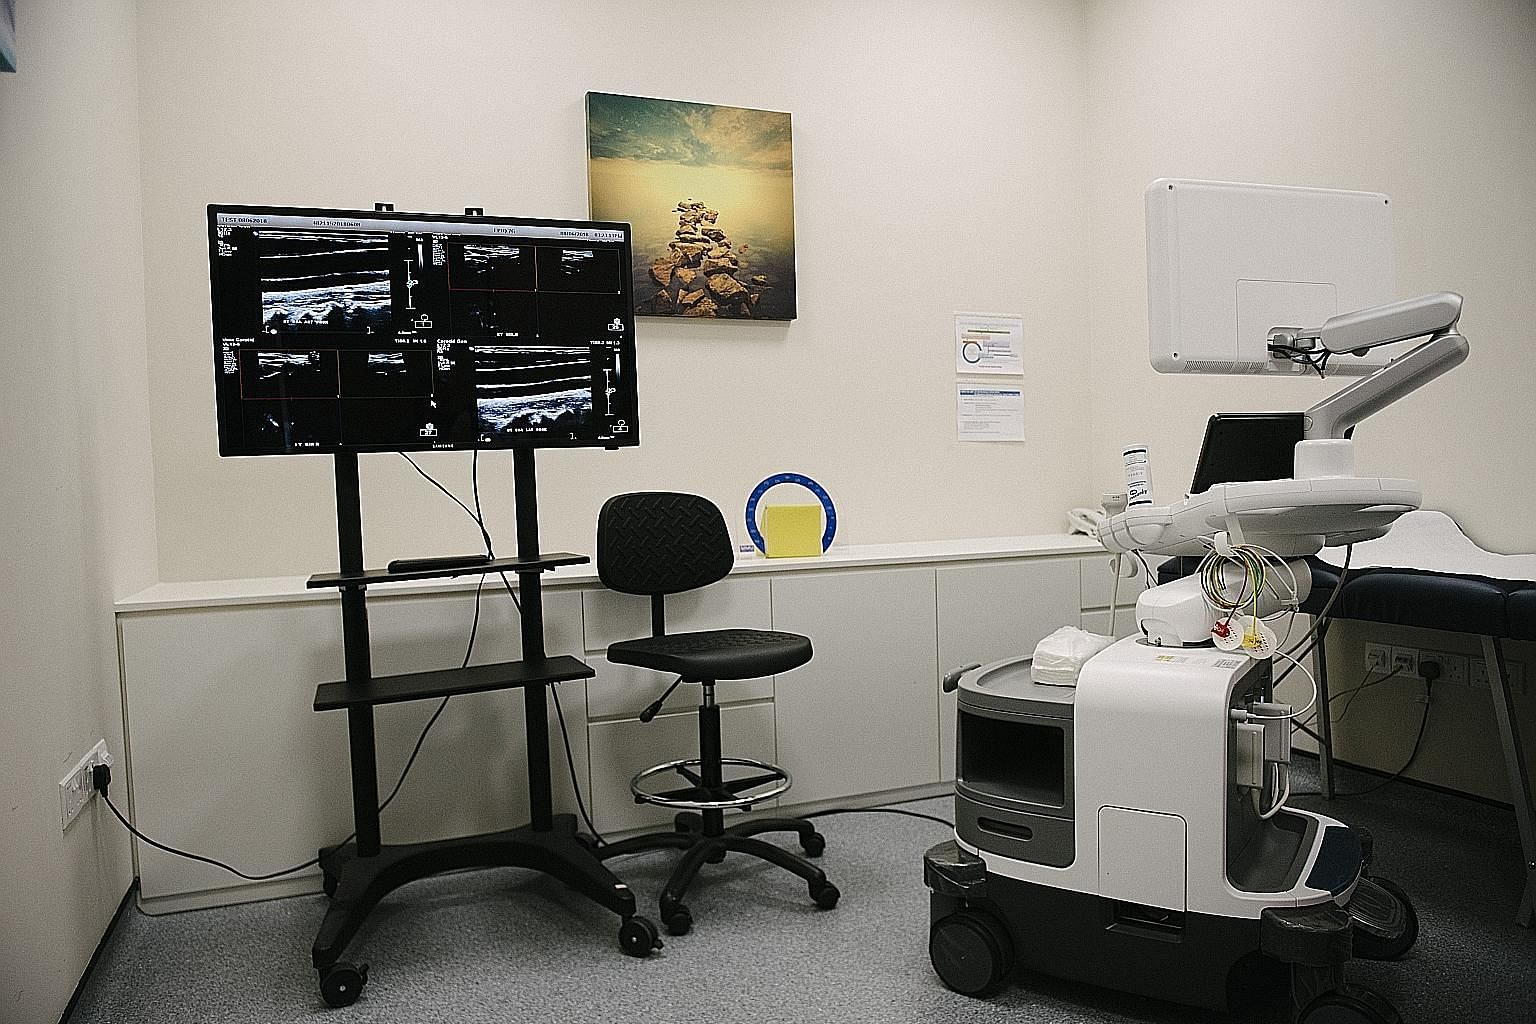 A 3D ultrasound machine used for carotid artery screening. Participants of the Health for Life in Singapore (Helios) study will go through comprehensive health screening, including full brain and body scans.